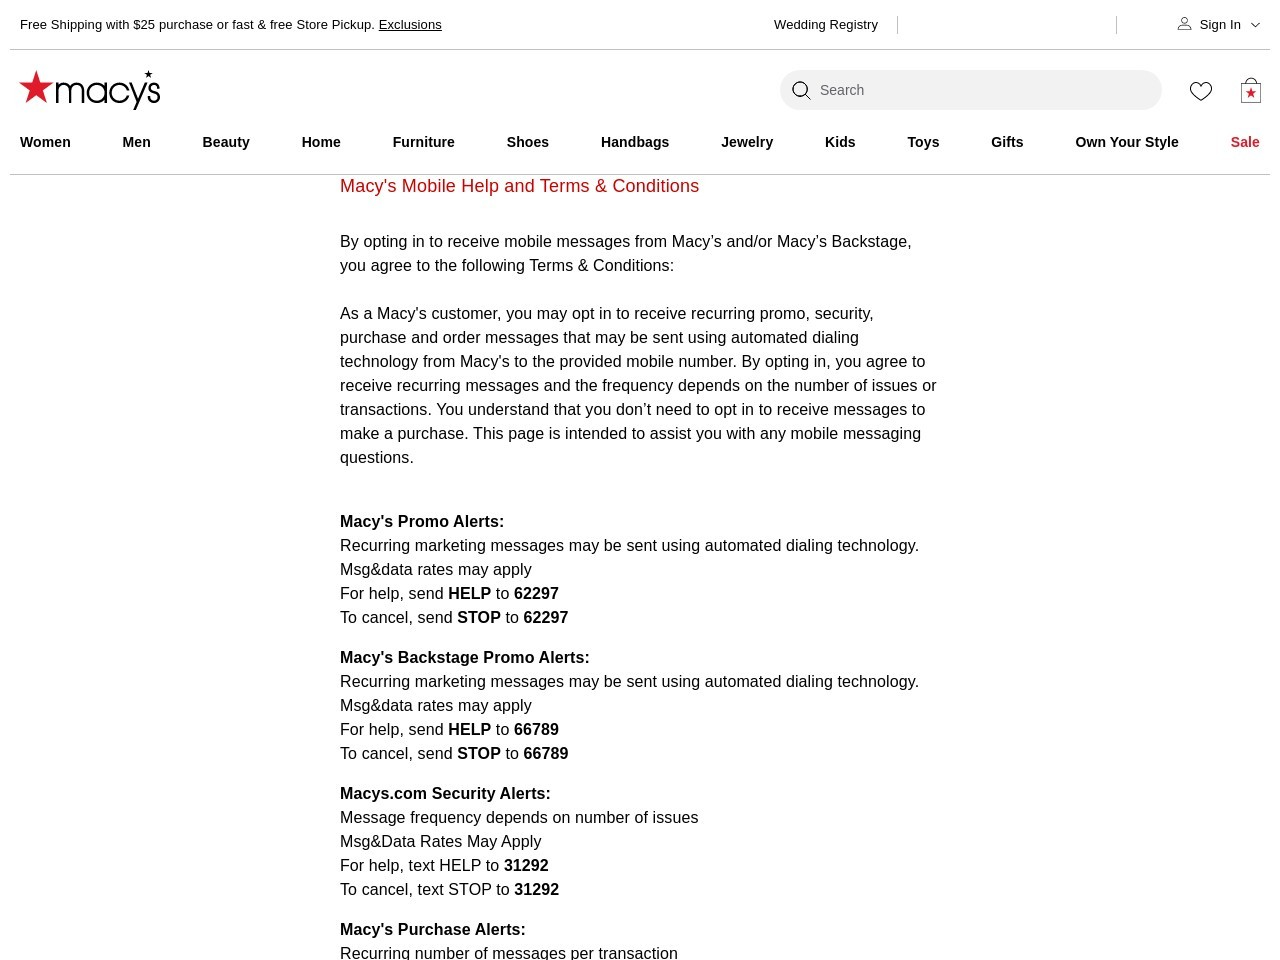 Macy's Mobile Help and Terms & Conditions